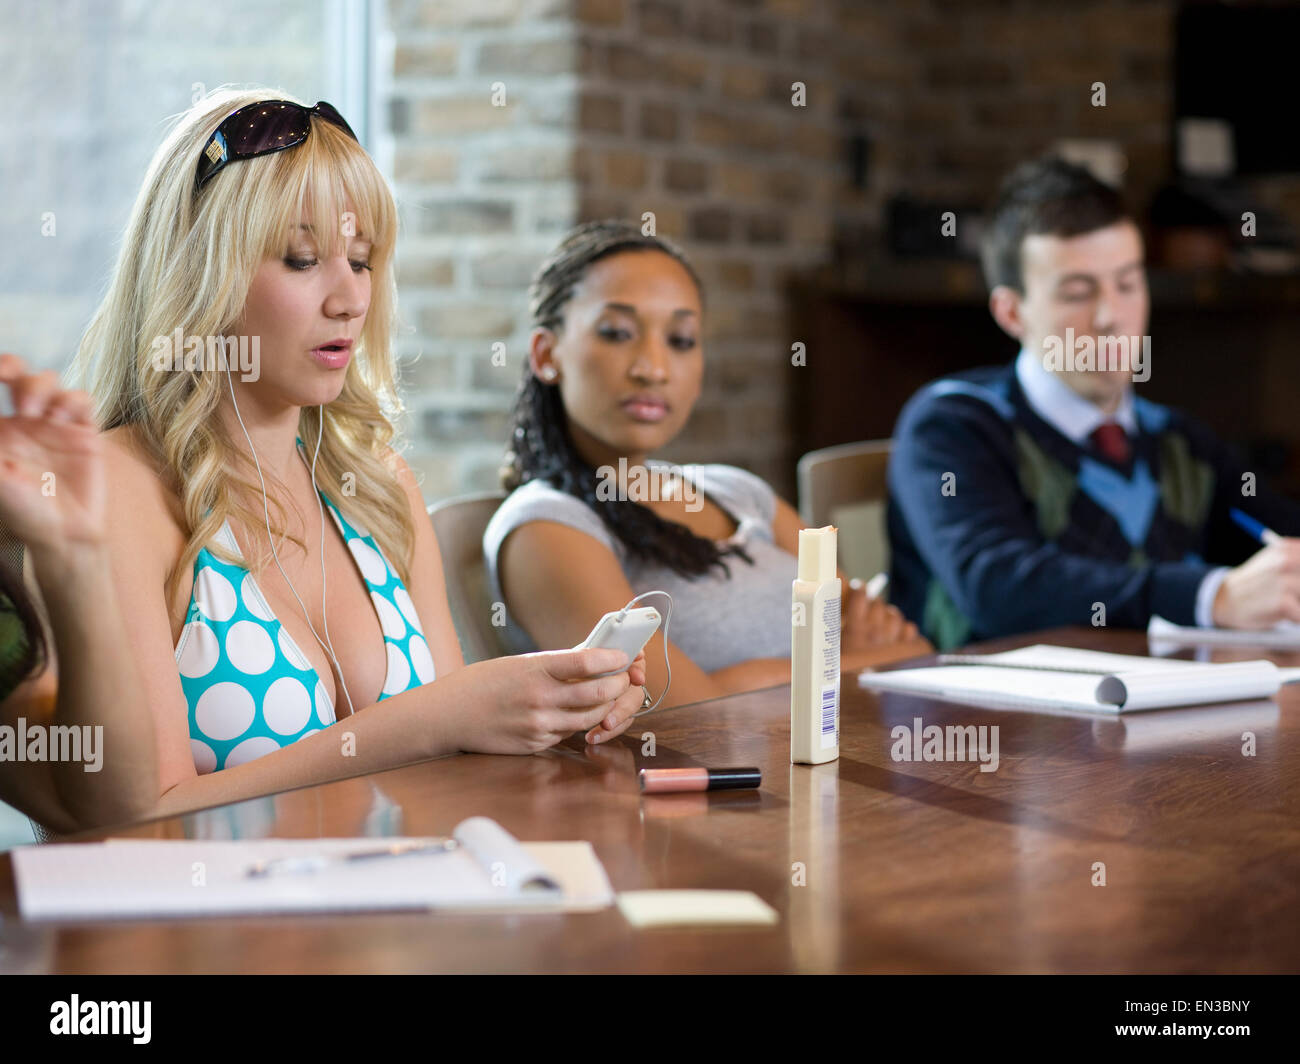 woman in a bikini at work - Stock Image